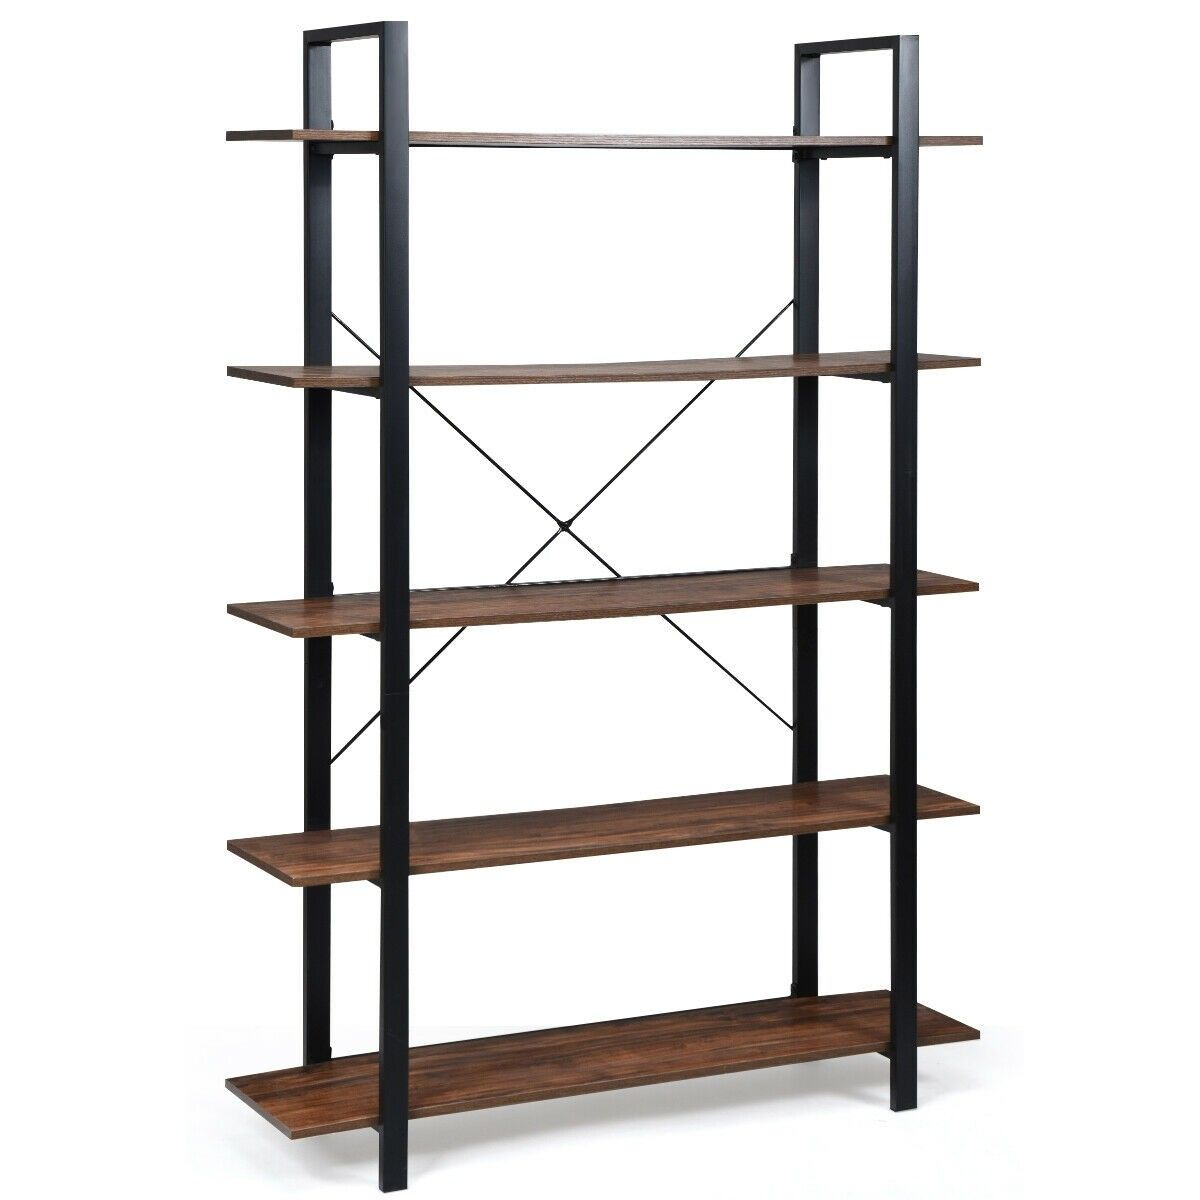 5 Tiers Bookshelf Industrial Bookcases Metal Frame Shelf Stand 129 95 Free Shipping It Is Made Of P2 Grade Industrial Bookcases Frame Shelf Display Shelves